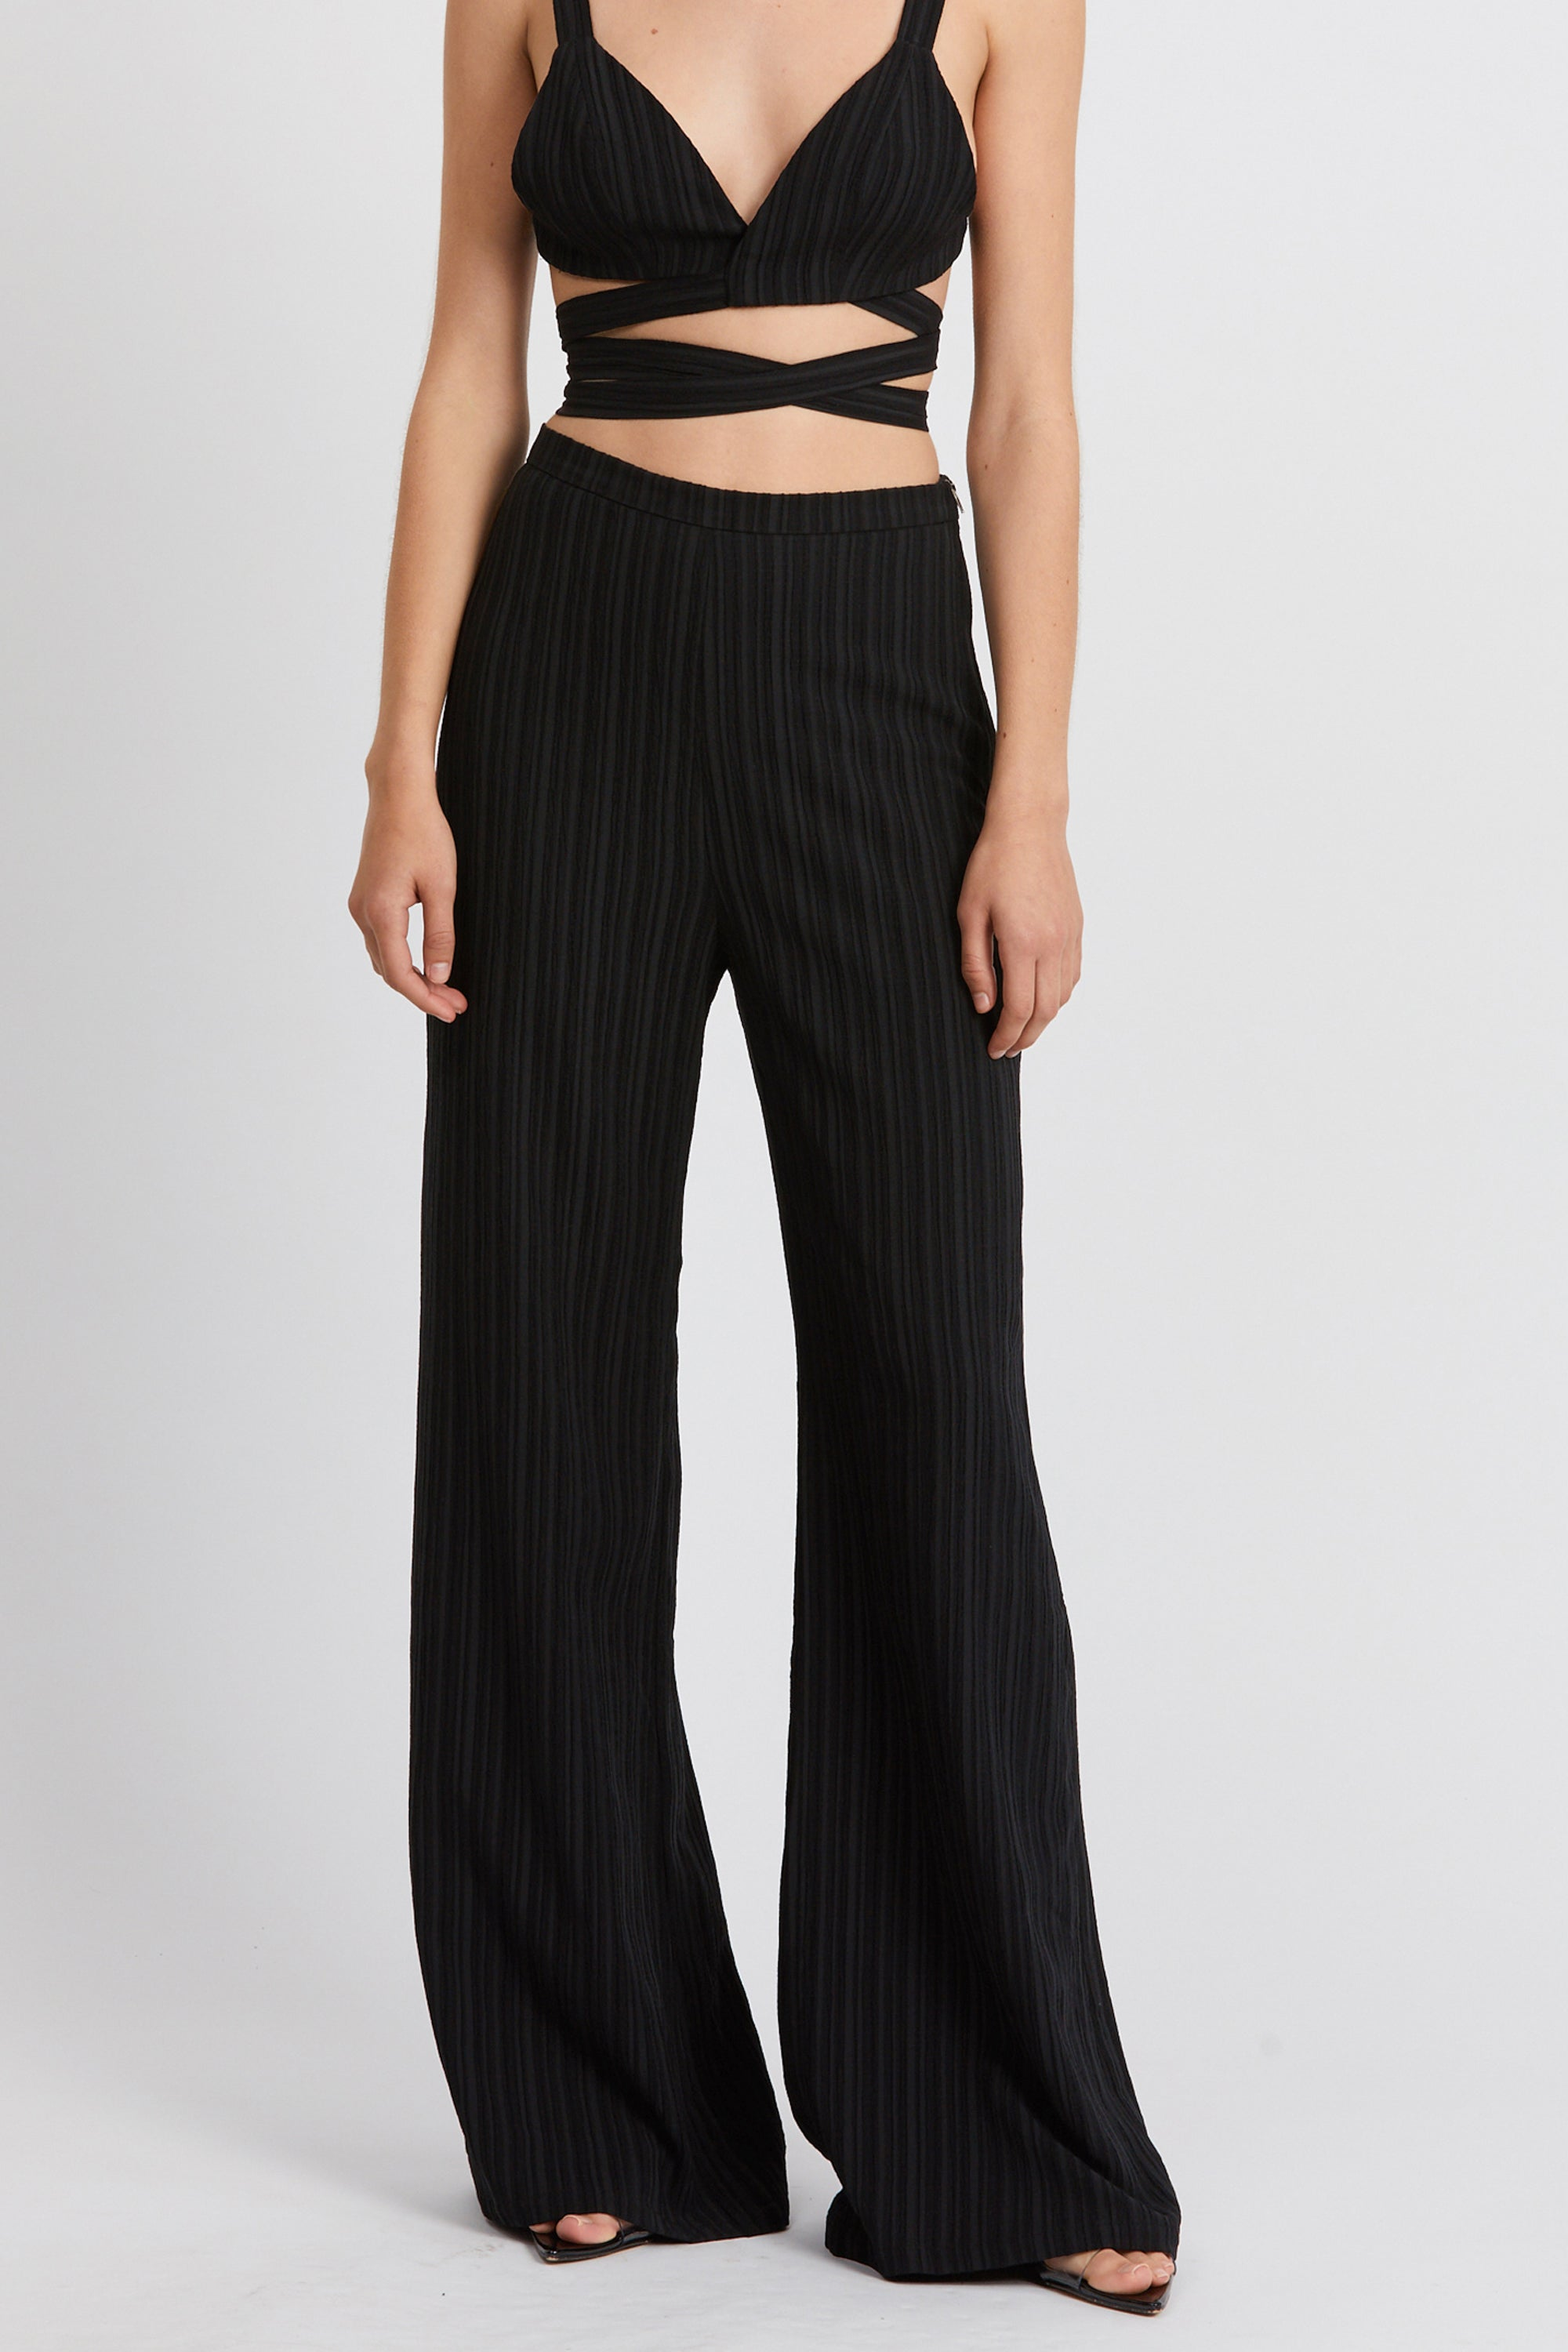 TIE DYE TROUSER | BLACK RIPPLE